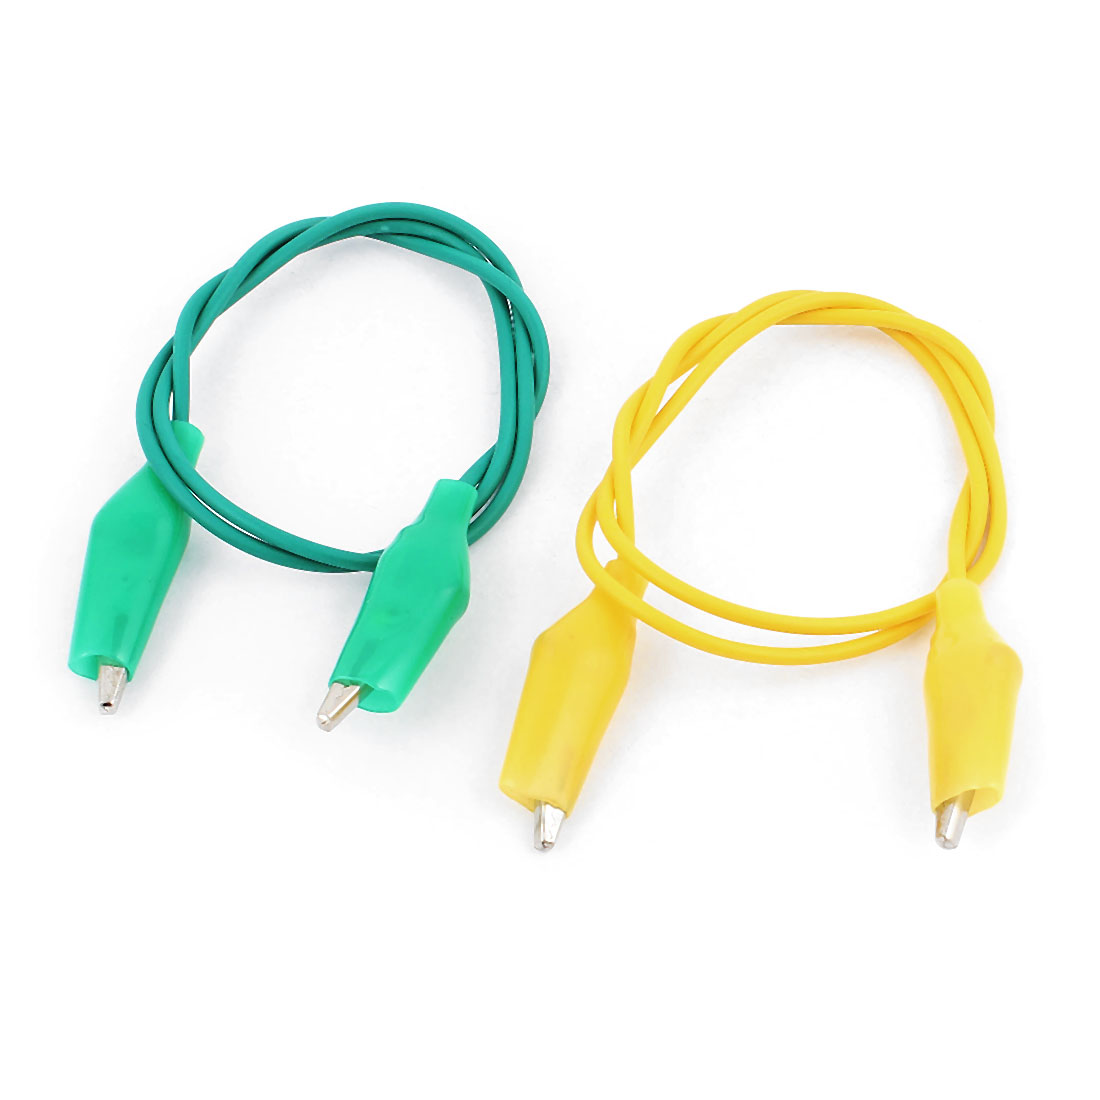 2pcs Yellow Green Insulated Double Ended Alligator Clip Test Leads Jumper Probe Cable Wire 47cm